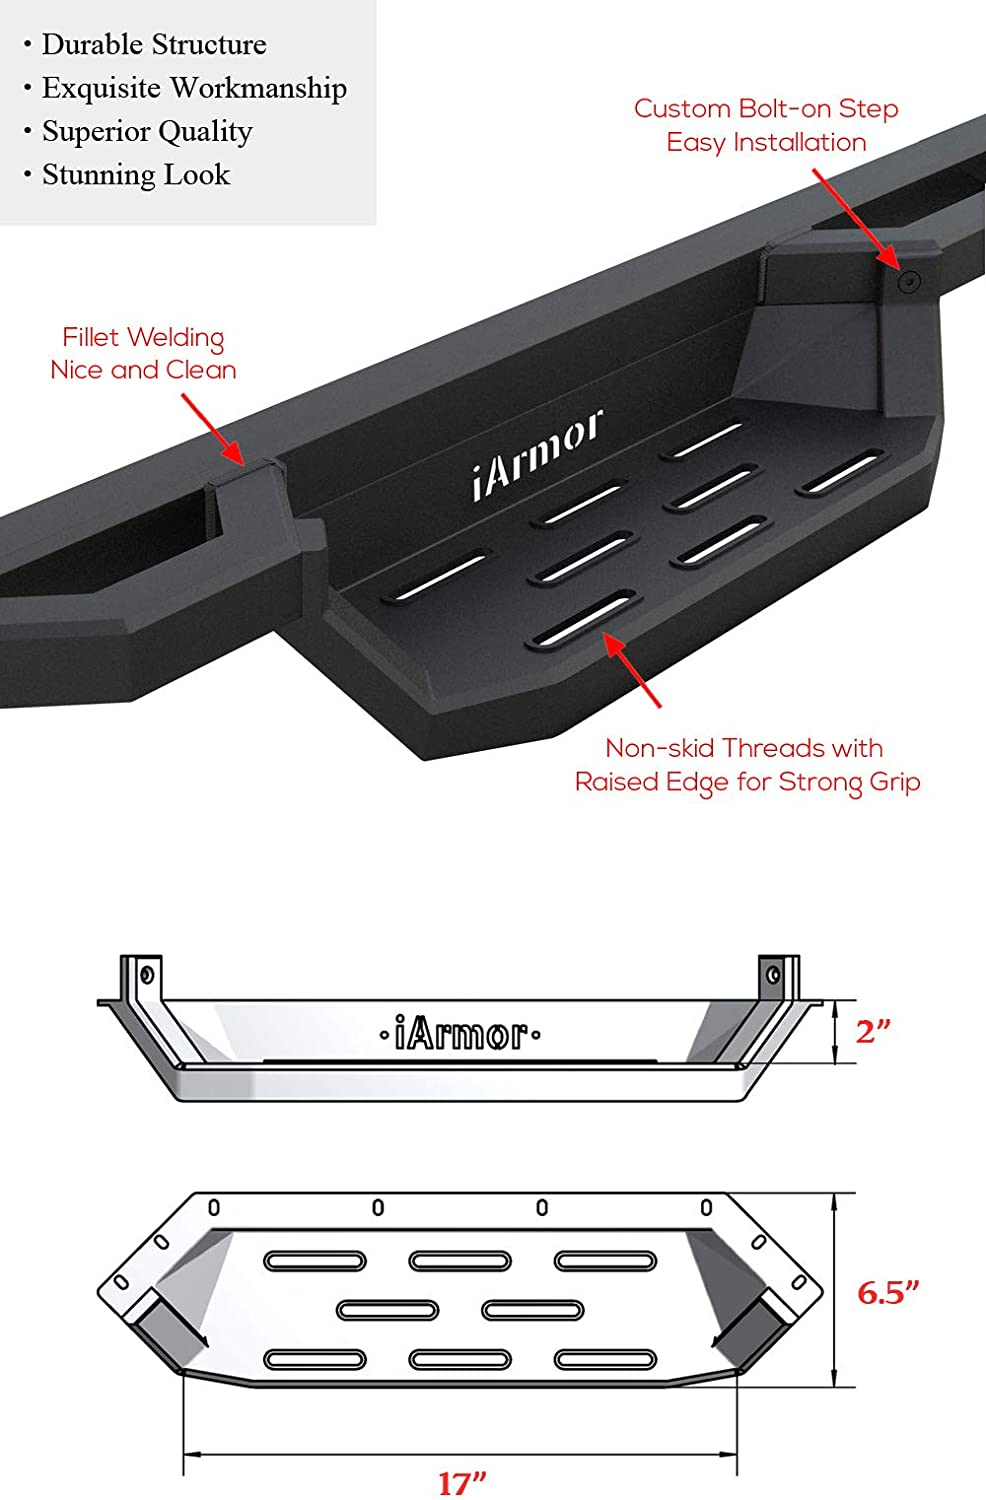 APS Aluminum Drop Steps Running Boards for Selected Toyota Tacoma Double Cab Crew Cab Side Armor Drop Step